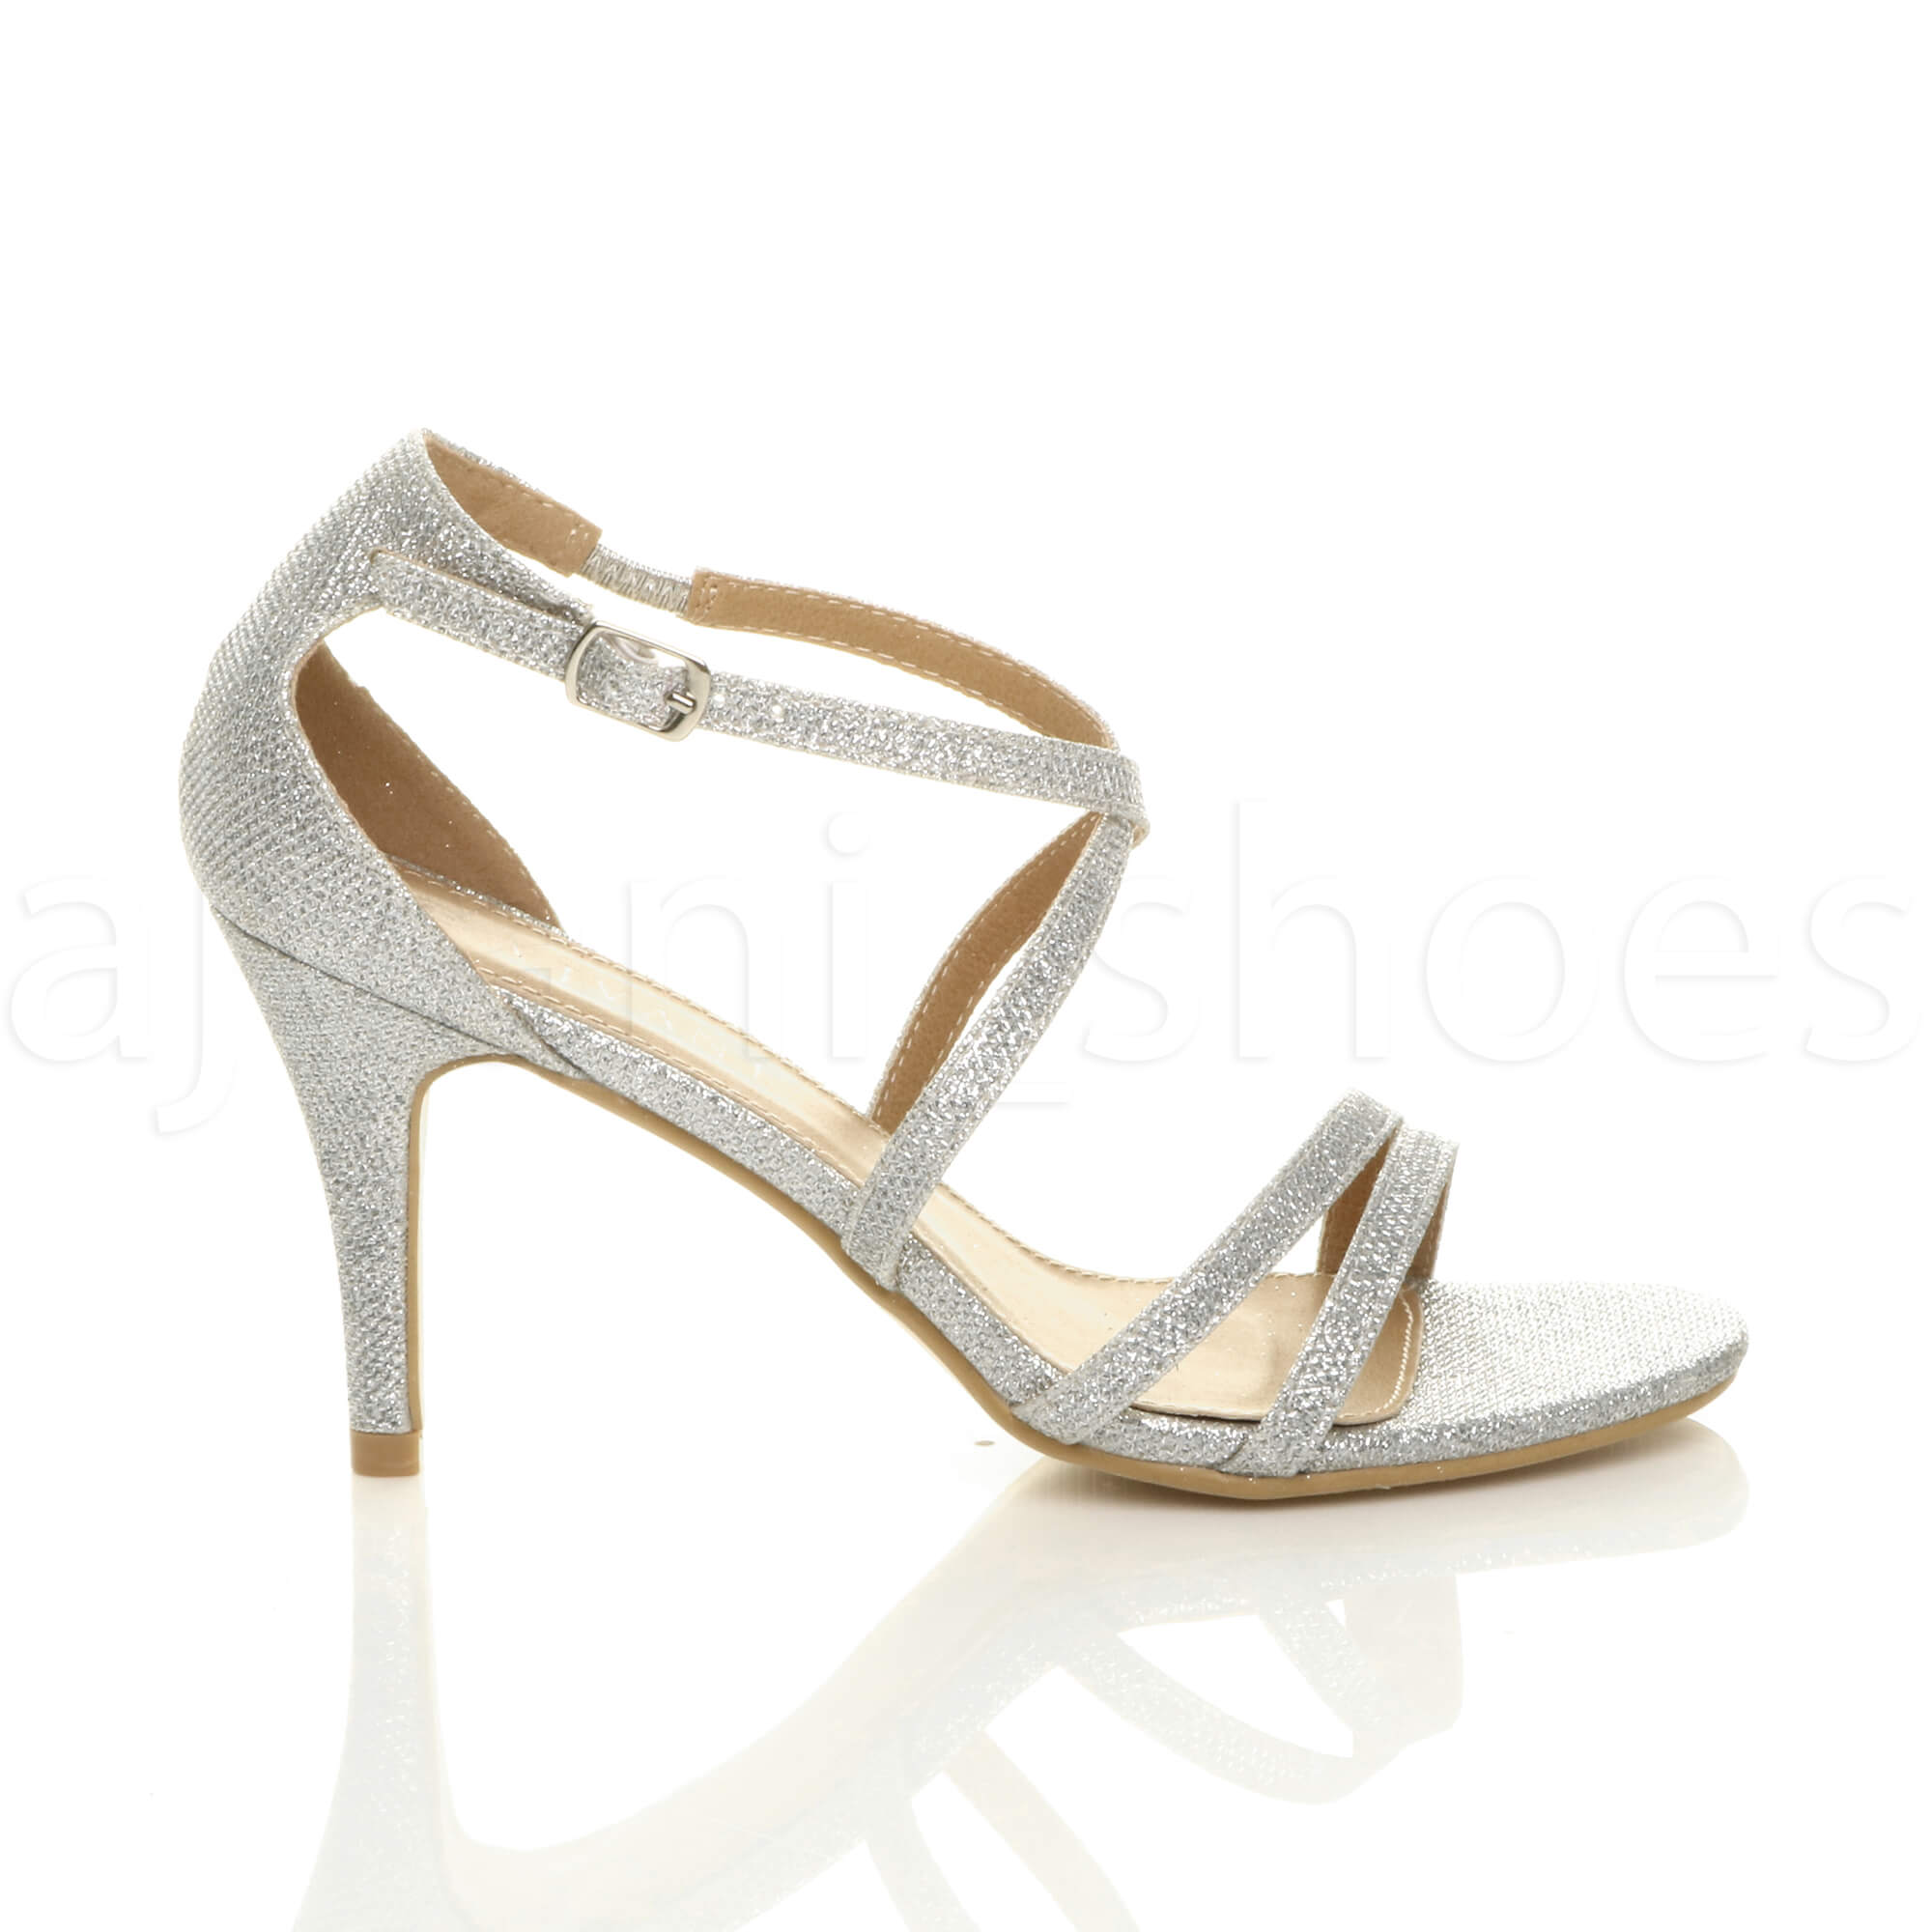 WOMENS-LADIES-MID-HIGH-HEEL-STRAPPY-CROSSOVER-WEDDING-PROM-SANDALS-SHOES-SIZE thumbnail 178